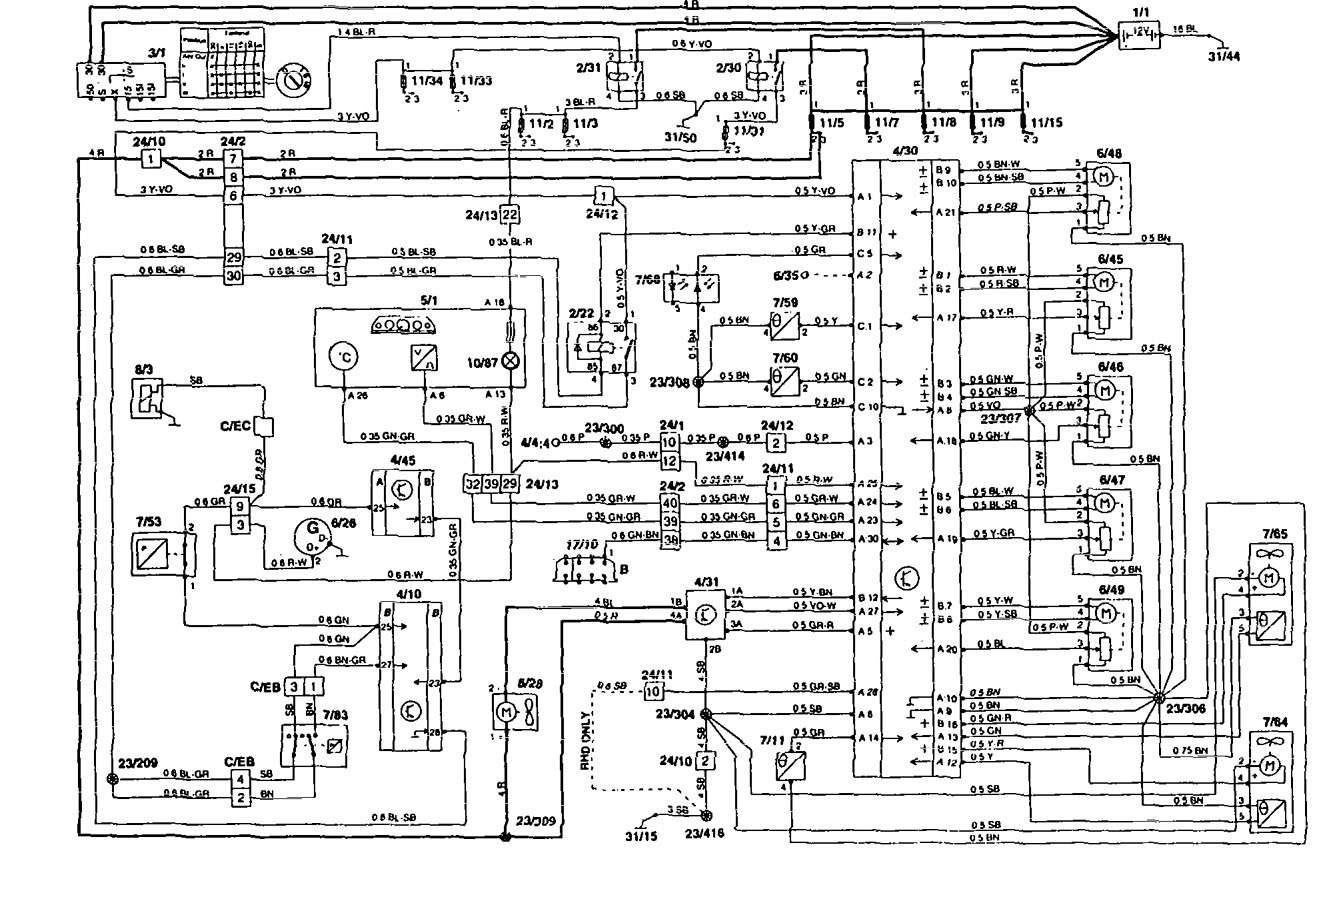 1997 Volvo 850 Radio Wiring Diagram